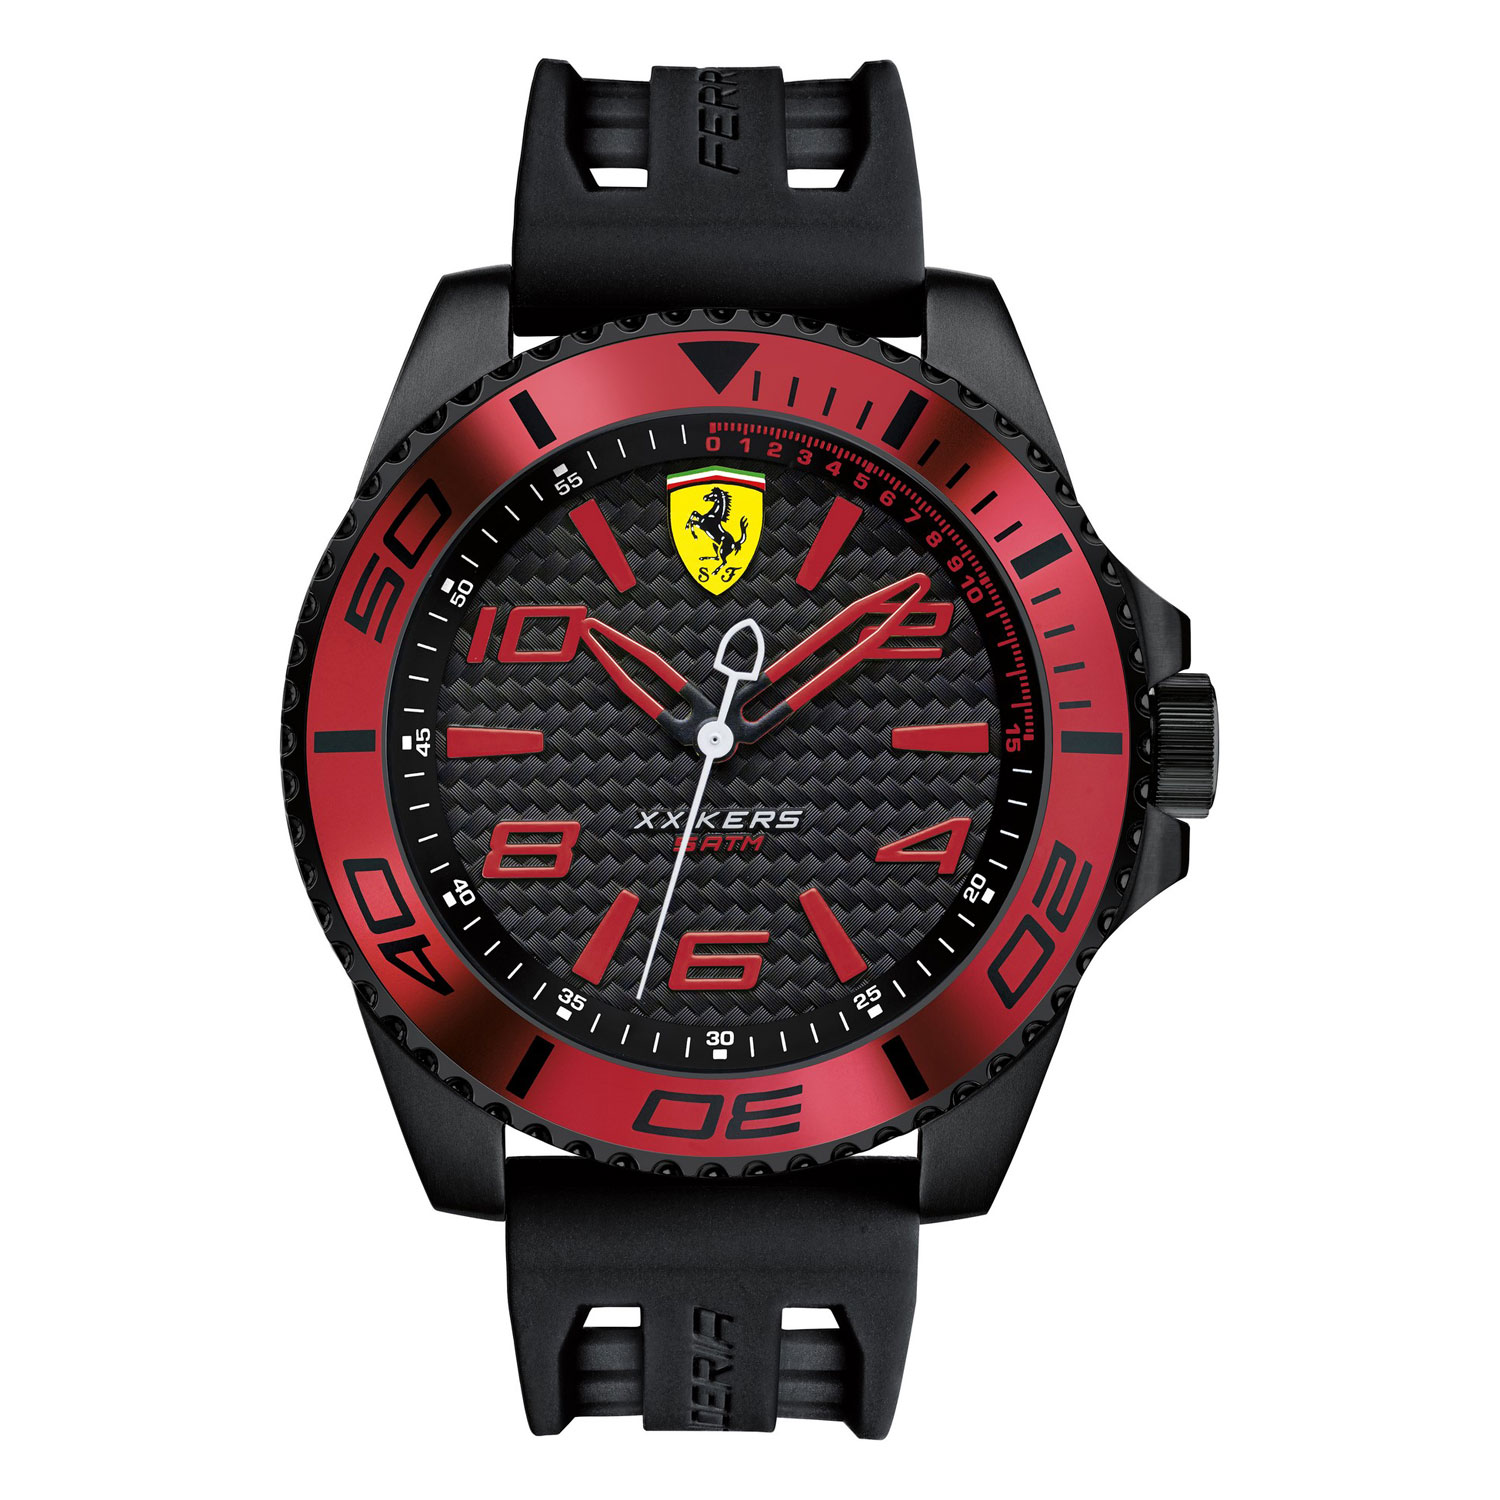 scuderia pin watches prices buy an s authorised we retailer lowest men are at ferrari